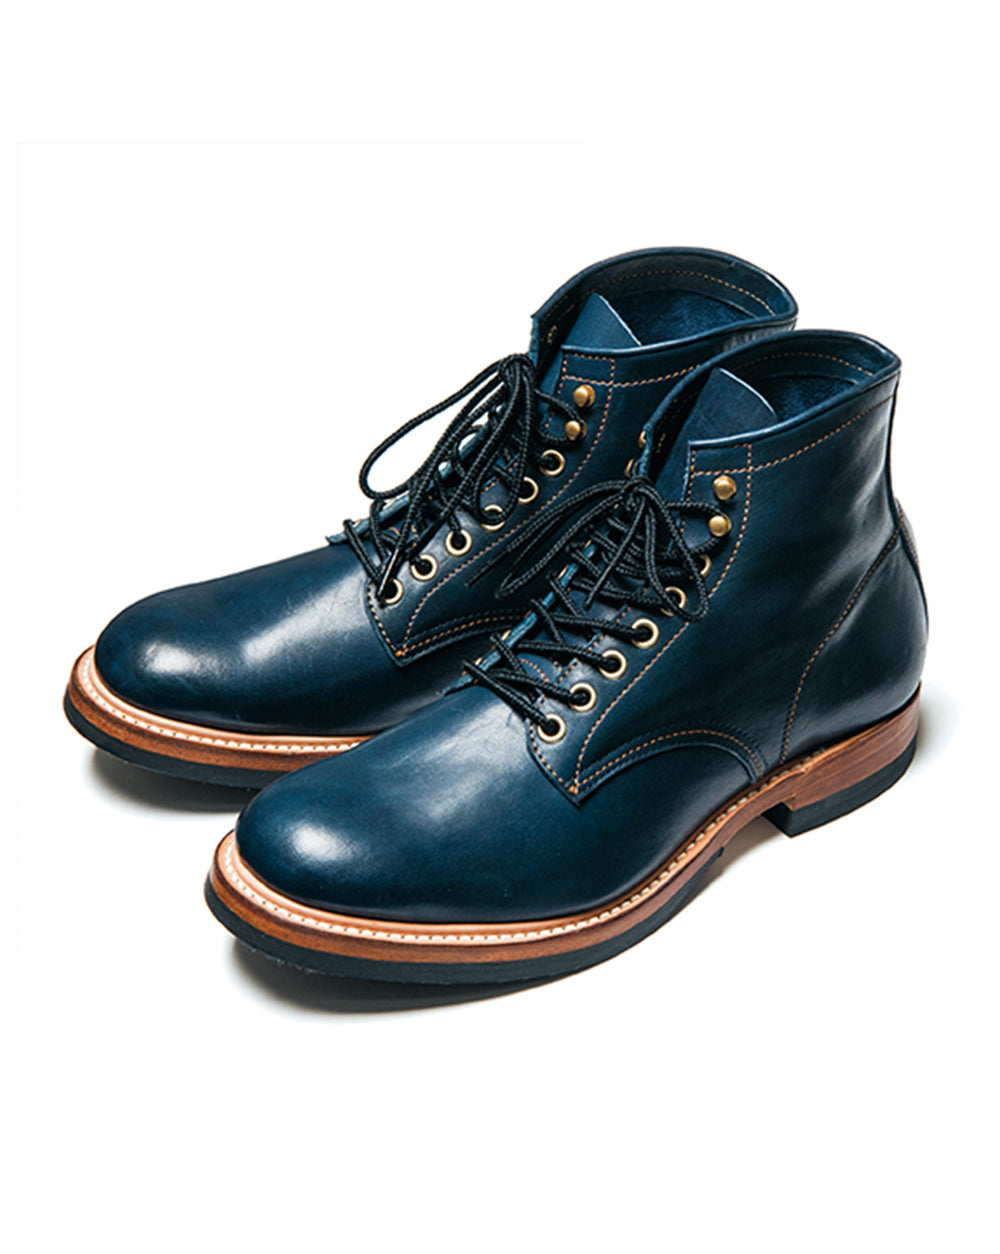 Pre-Order - Indigo Dyed Horse Service Boots (IS-02)